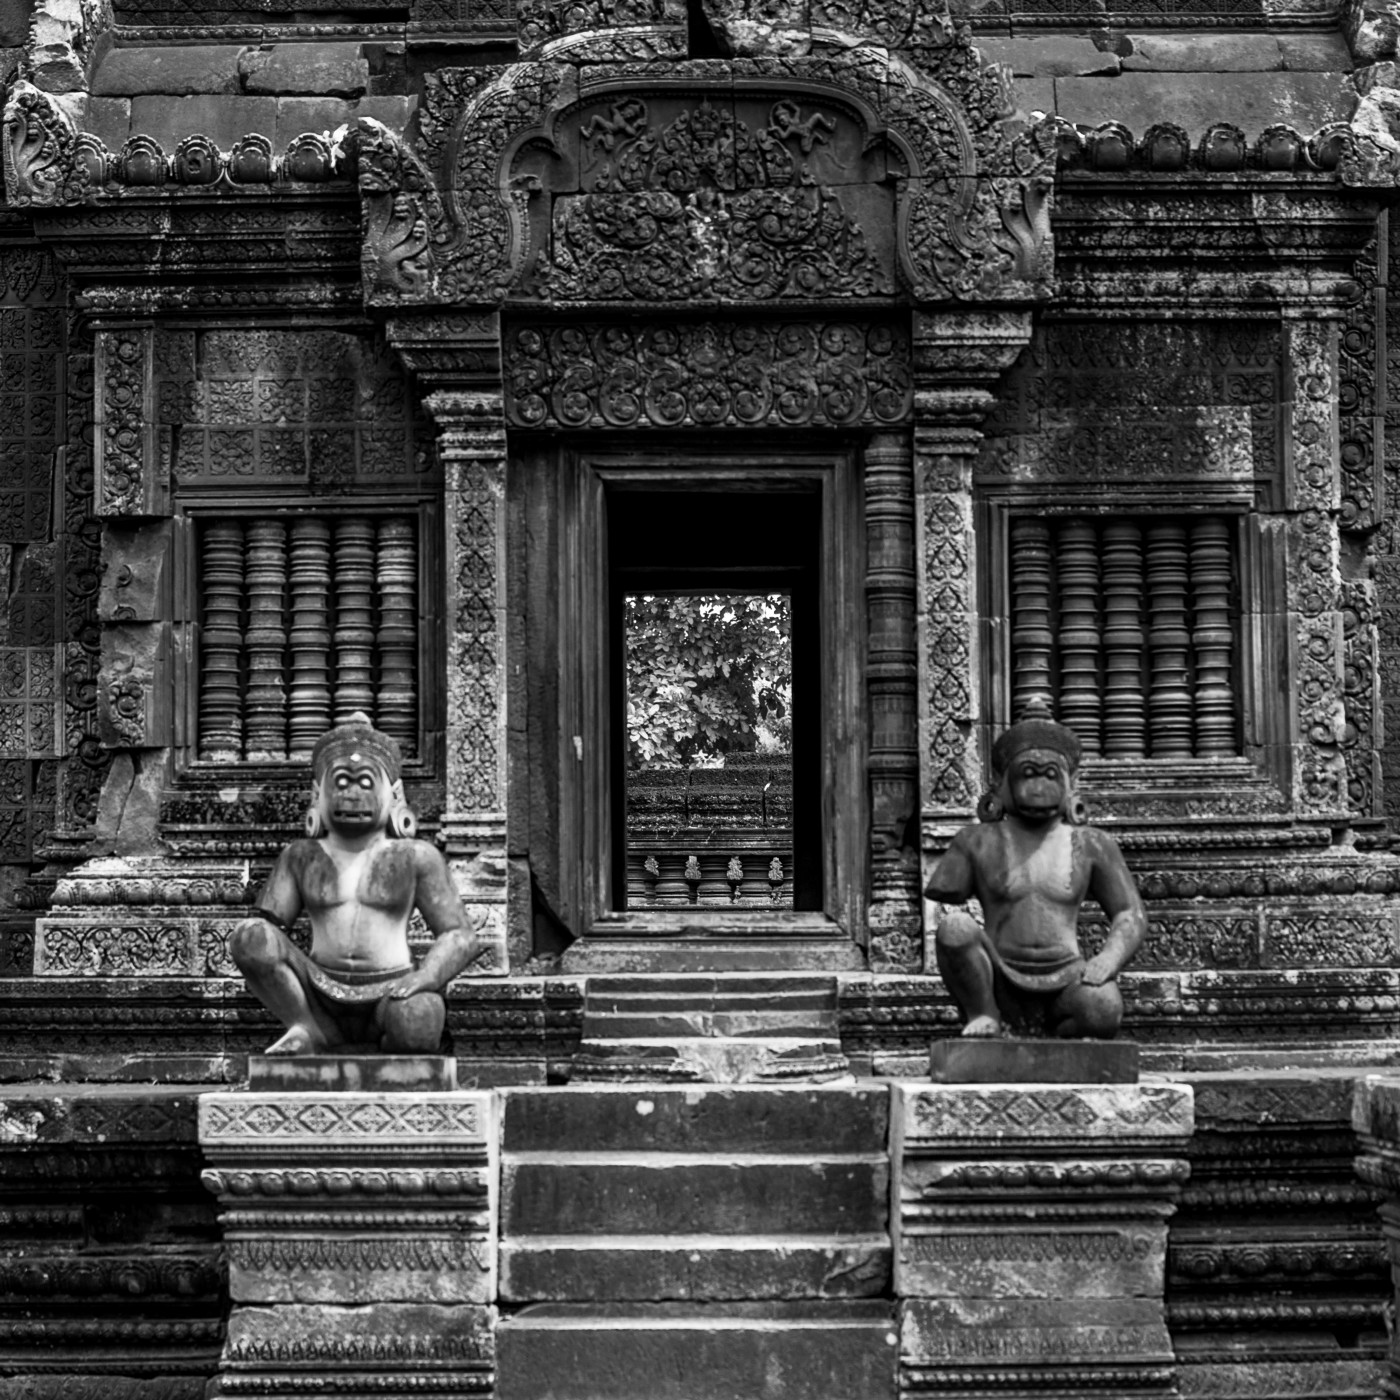 The Magic of Angkor Wat is Lost, and Never to be Found Again